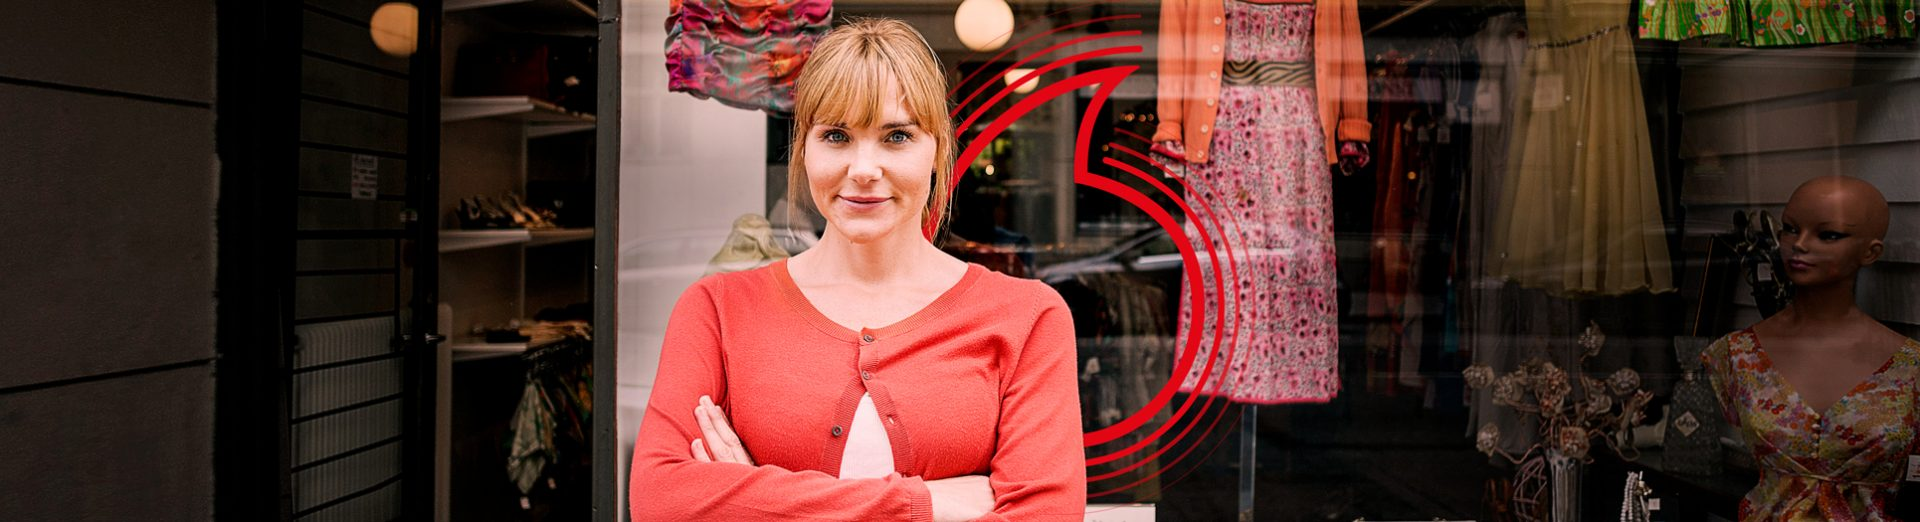 Young business woman in front of shop window